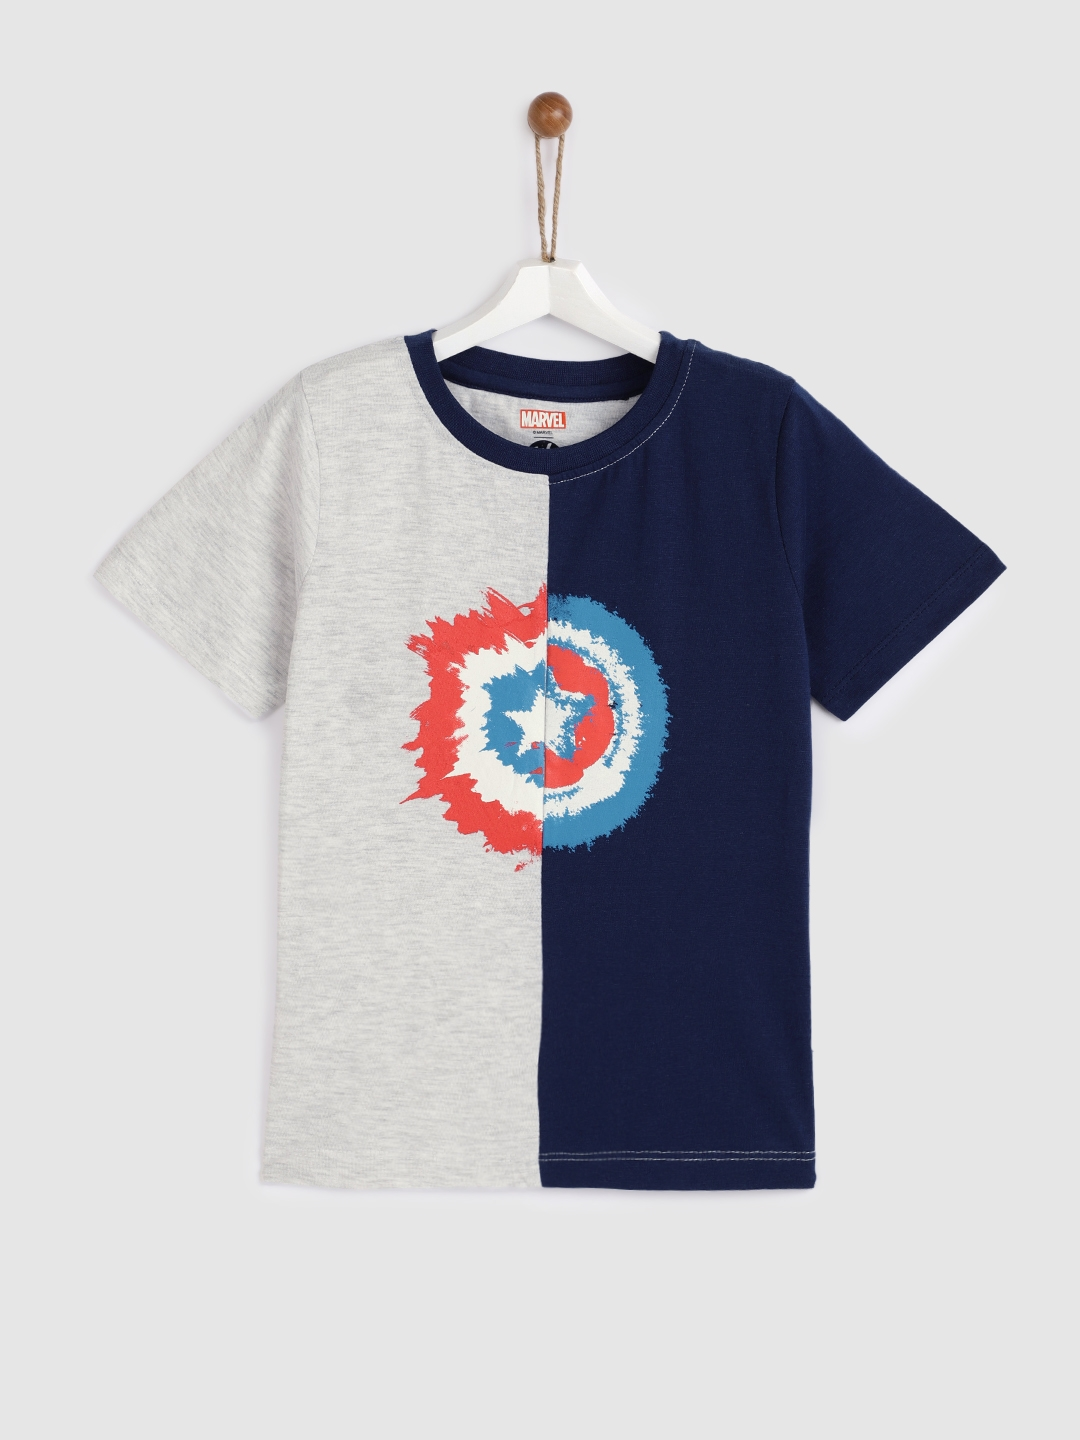 43a13cd9c Buy YK Marvel Boys Grey & Navy Blue Printed Round Neck T Shirt ...